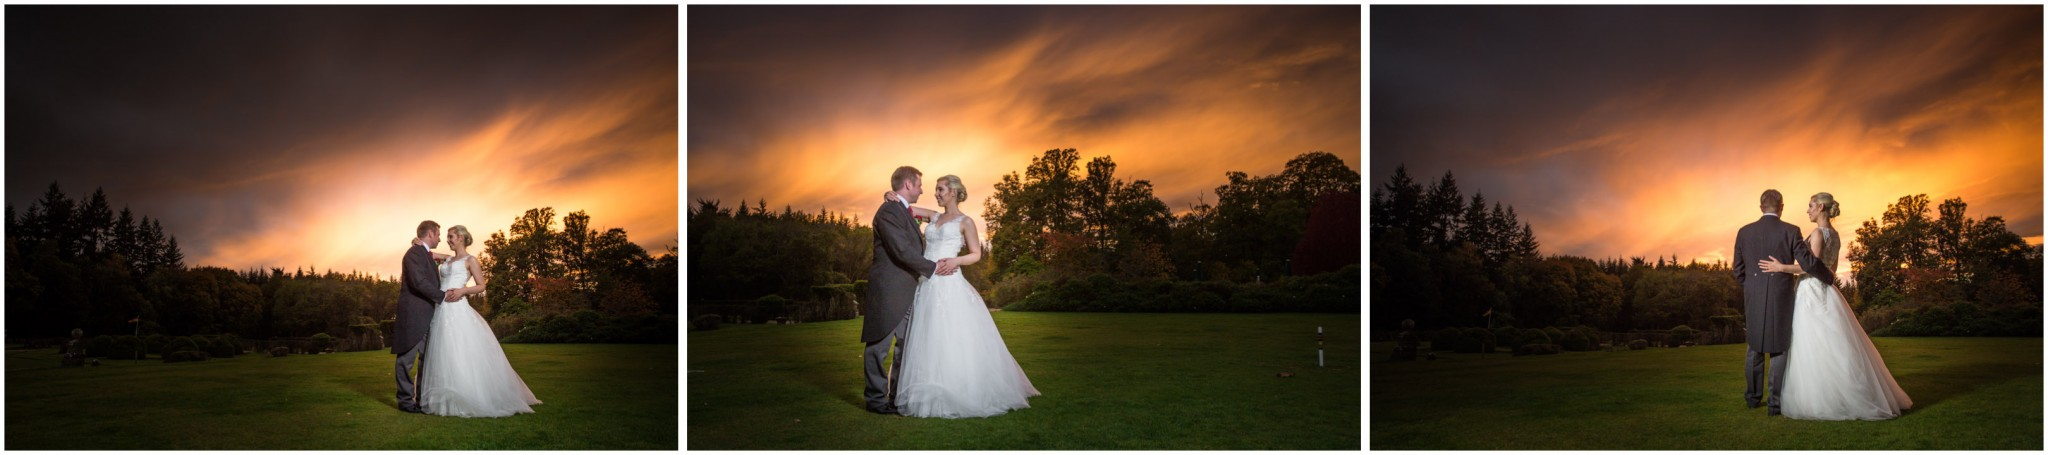 Rhinefield House Wedding Bride & Groom at sunset